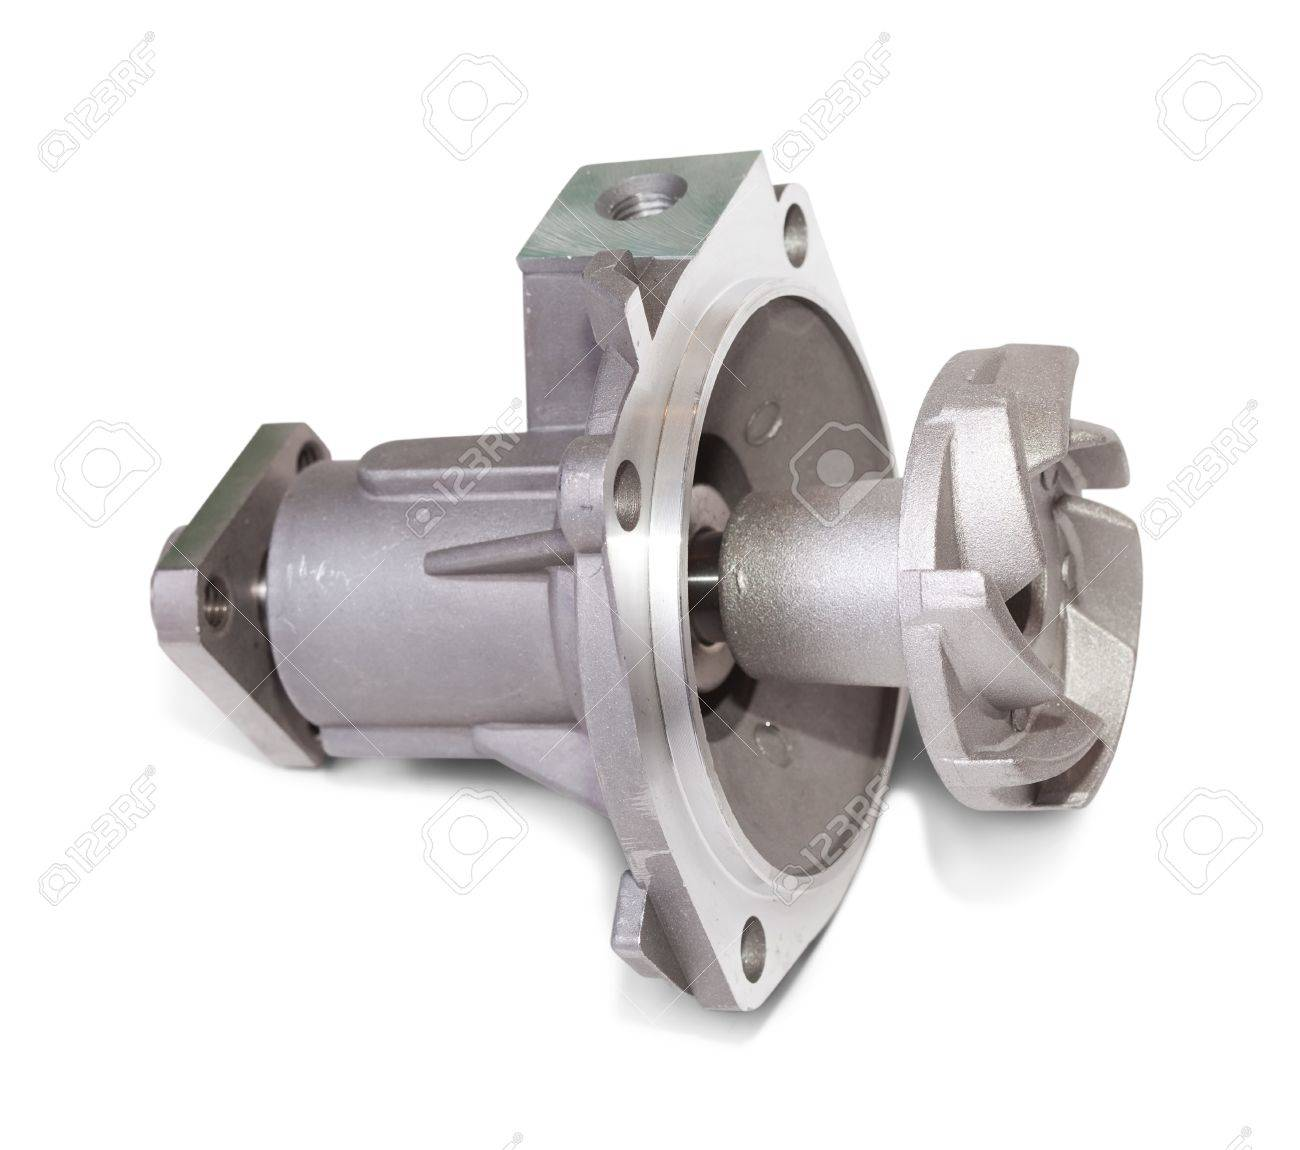 automotive water pump. Isolated on white with clipping path Stock Photo - 8383279